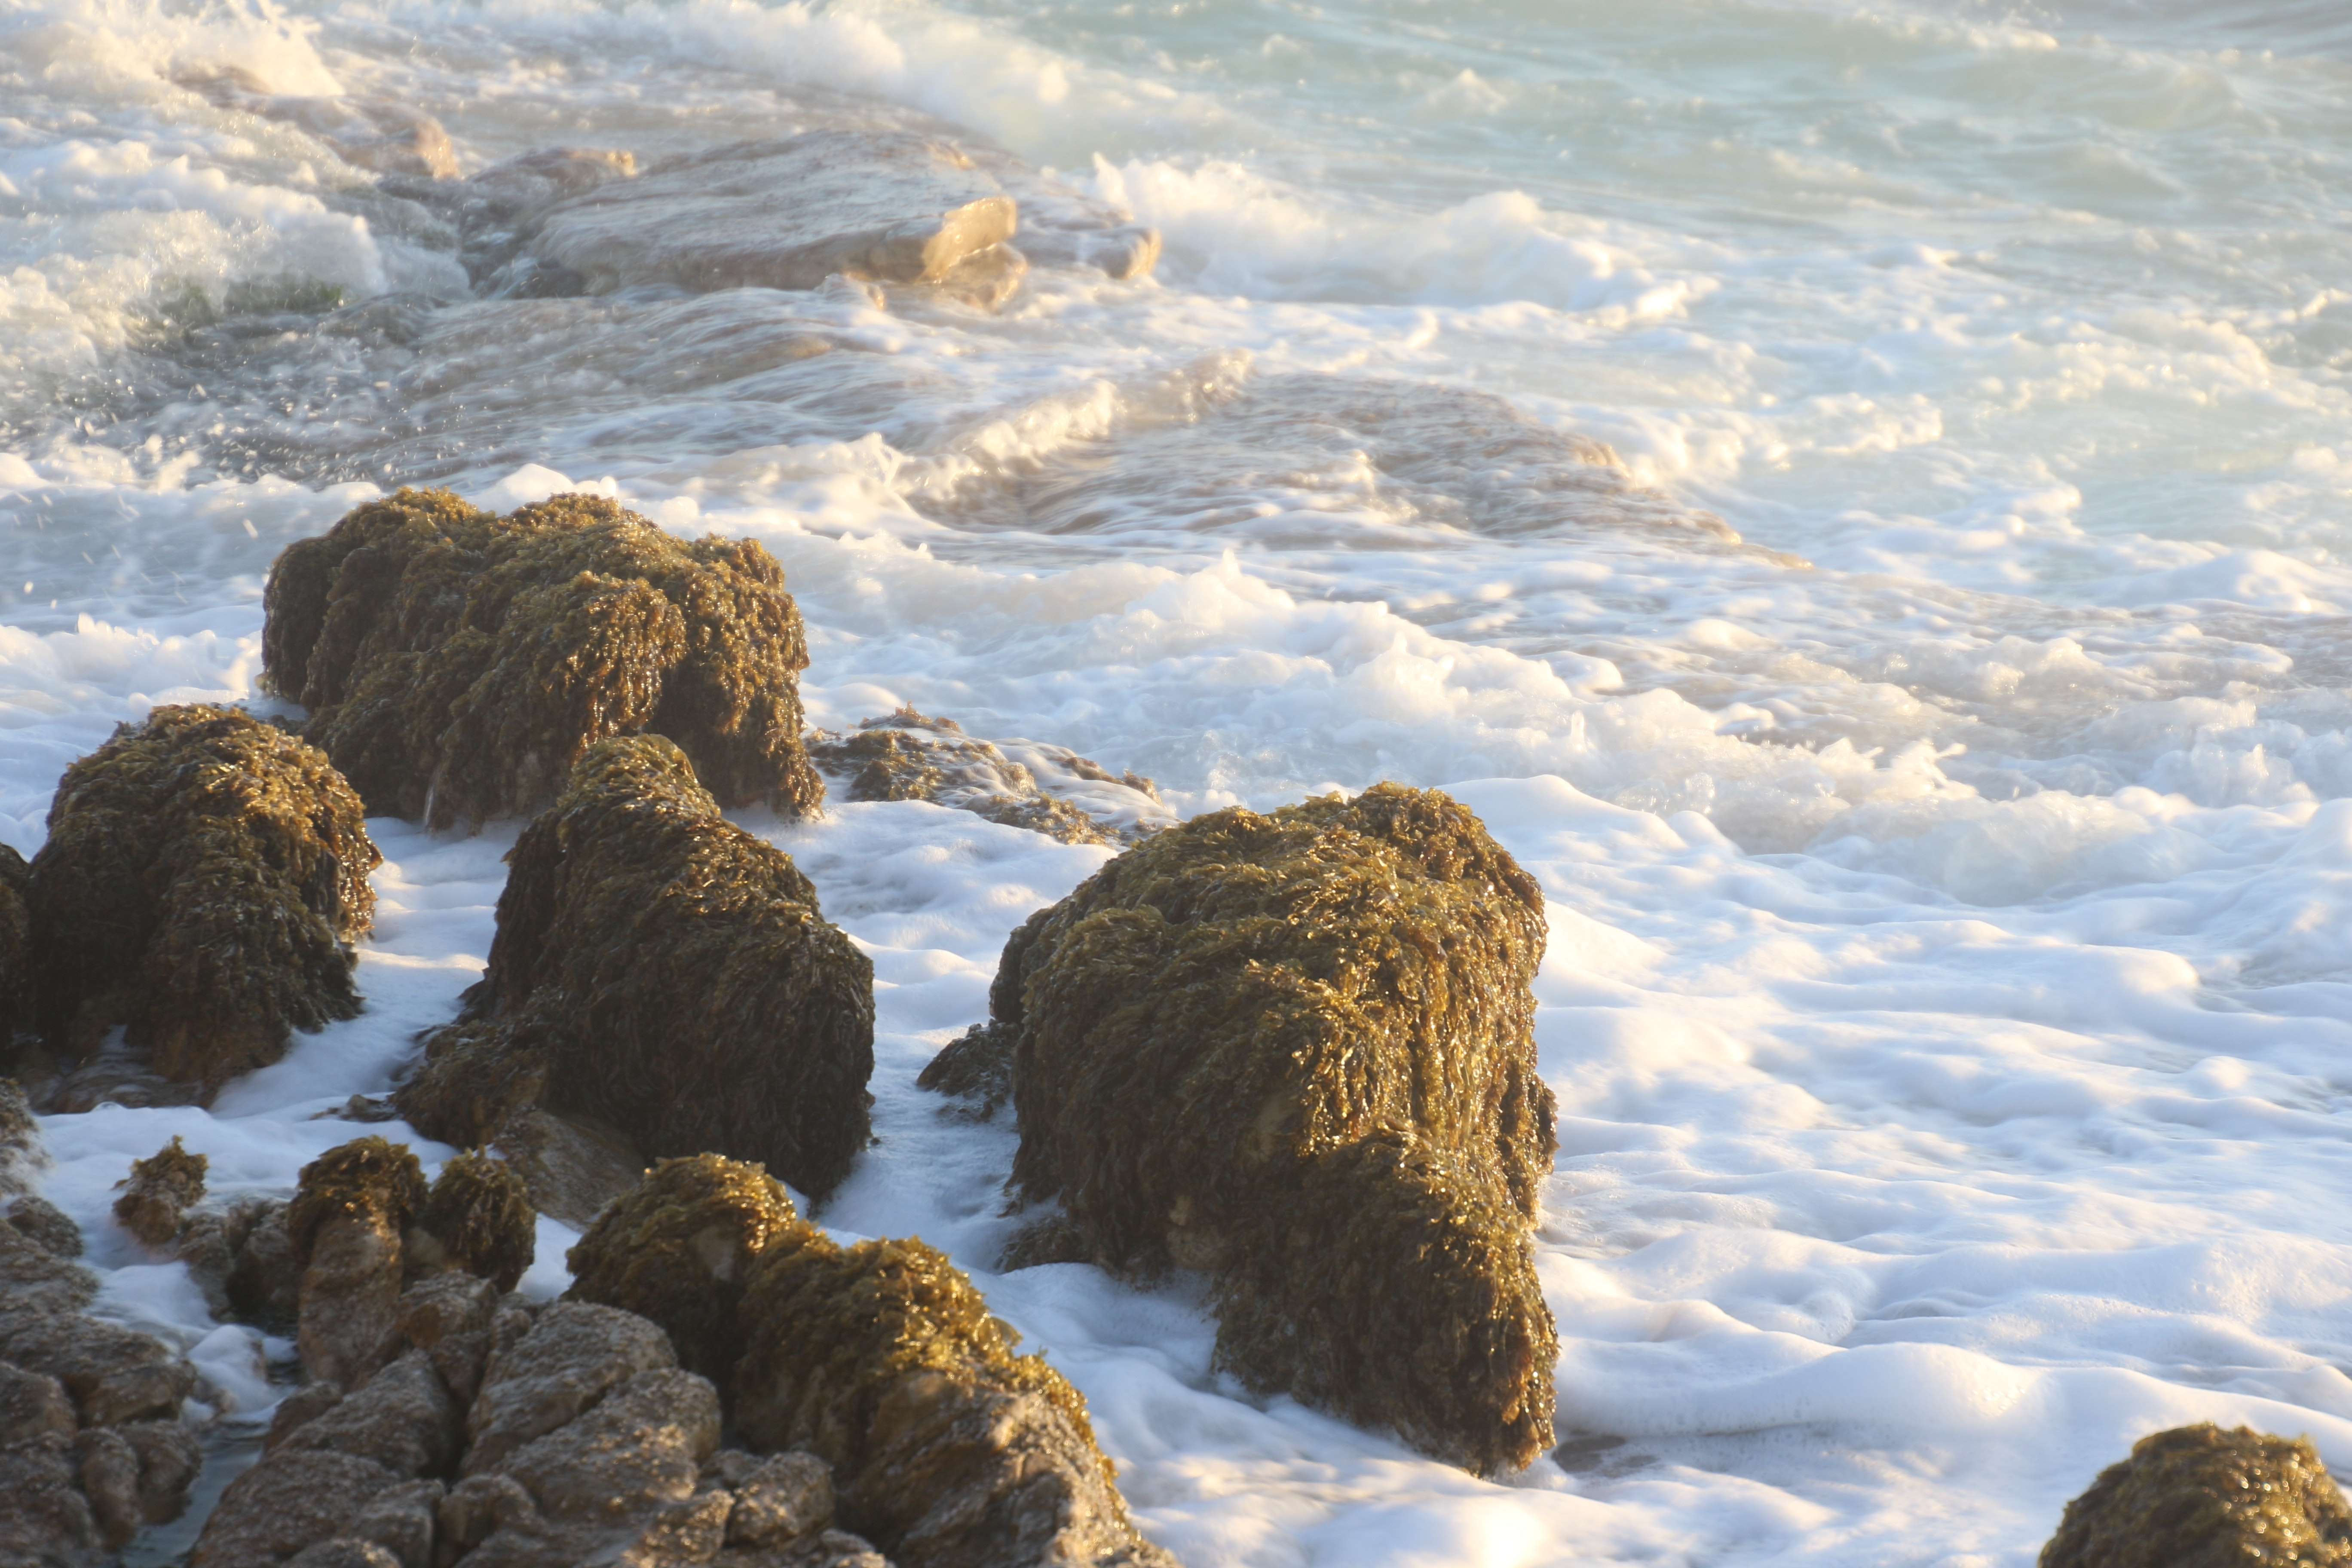 Rock formation near body of water photo